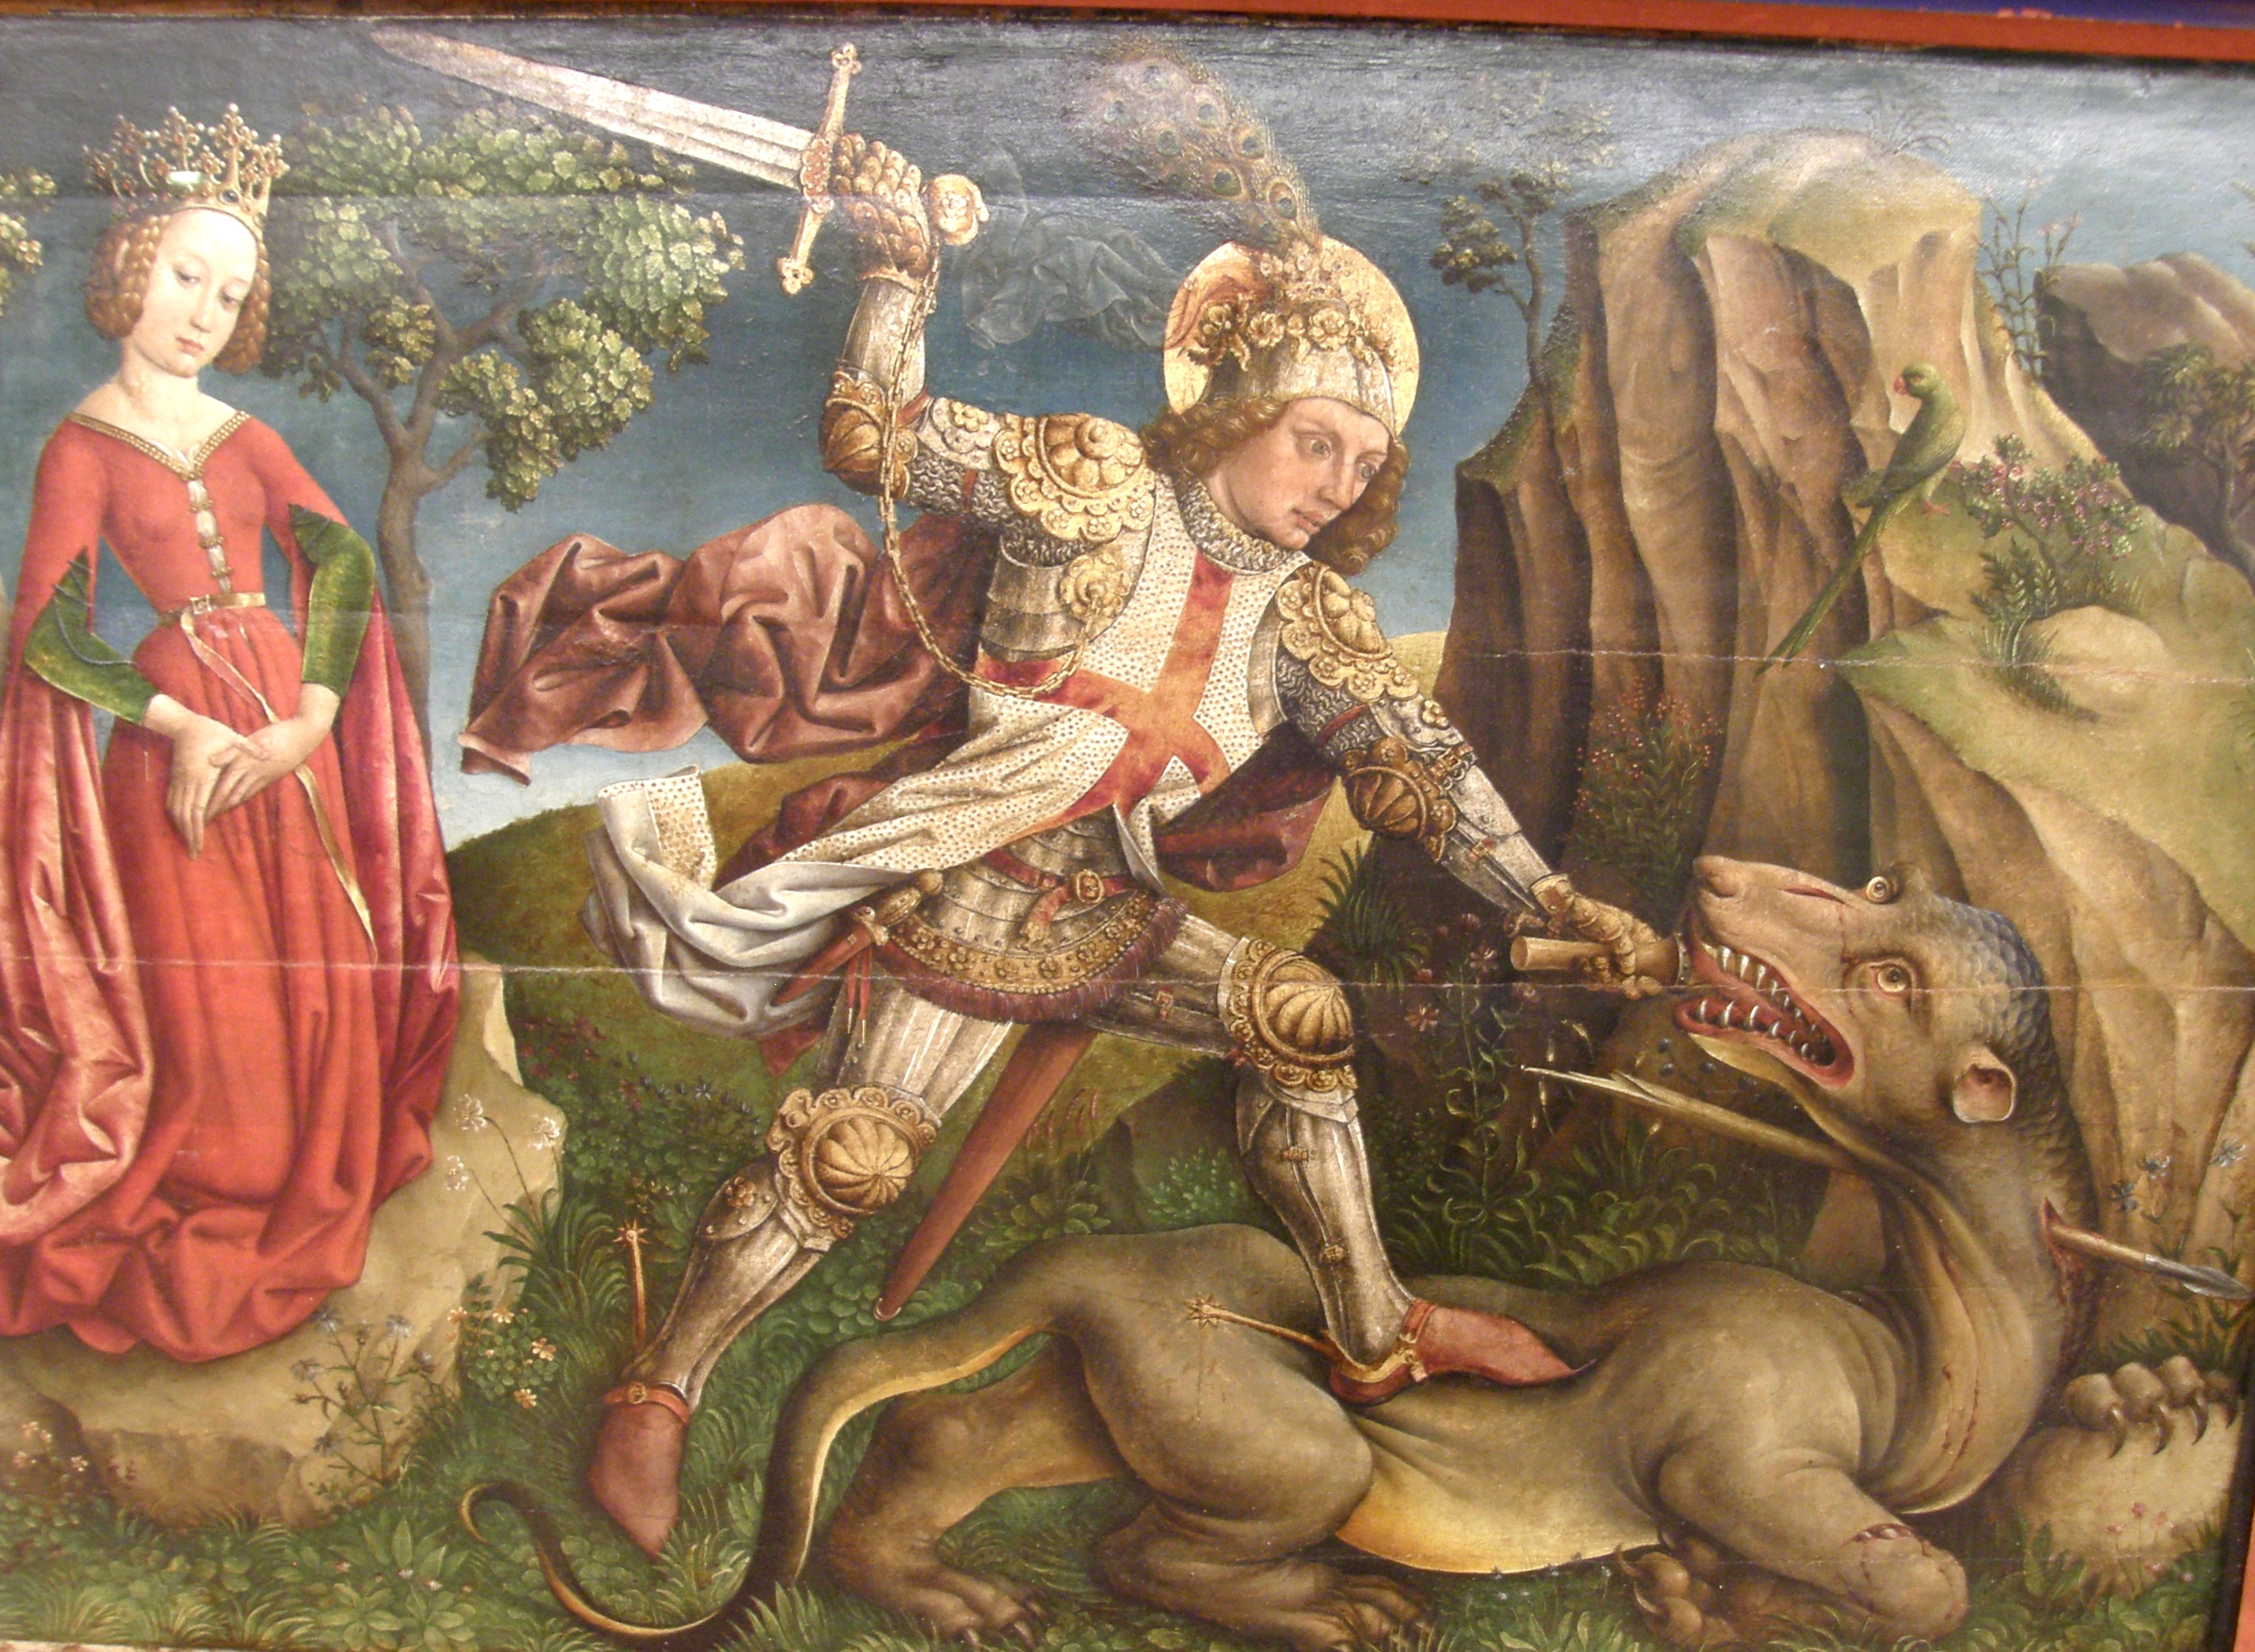 https://upload.wikimedia.org/wikipedia/commons/c/c4/Jost_Haller_-_Saint_George_slaying_the_dragon%2C_Unterlinden_Museum%2C_Colmar.jpg